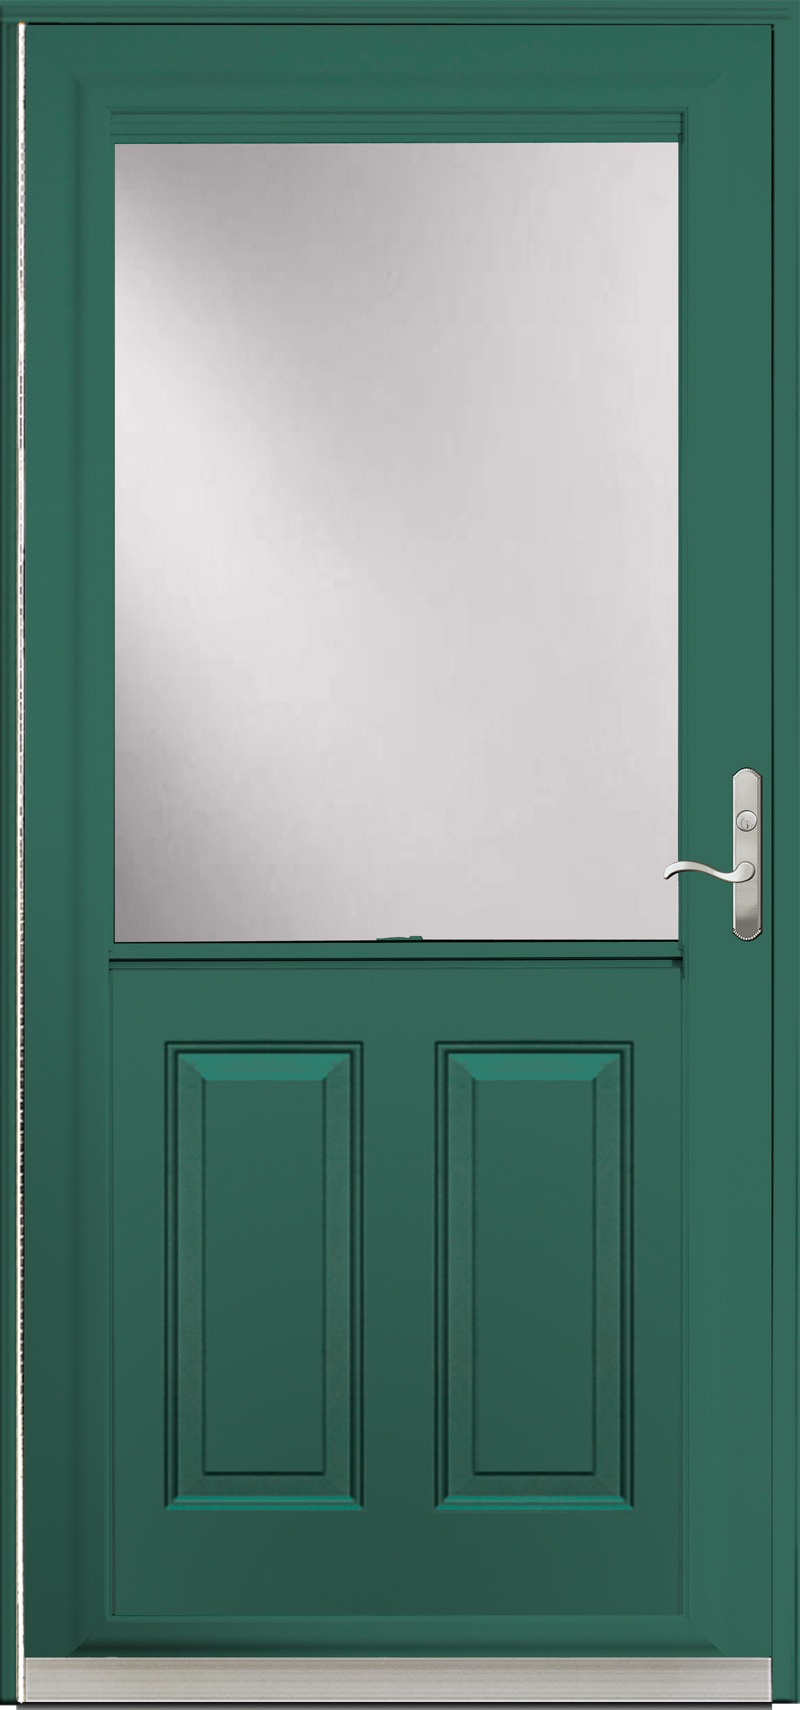 A single green door